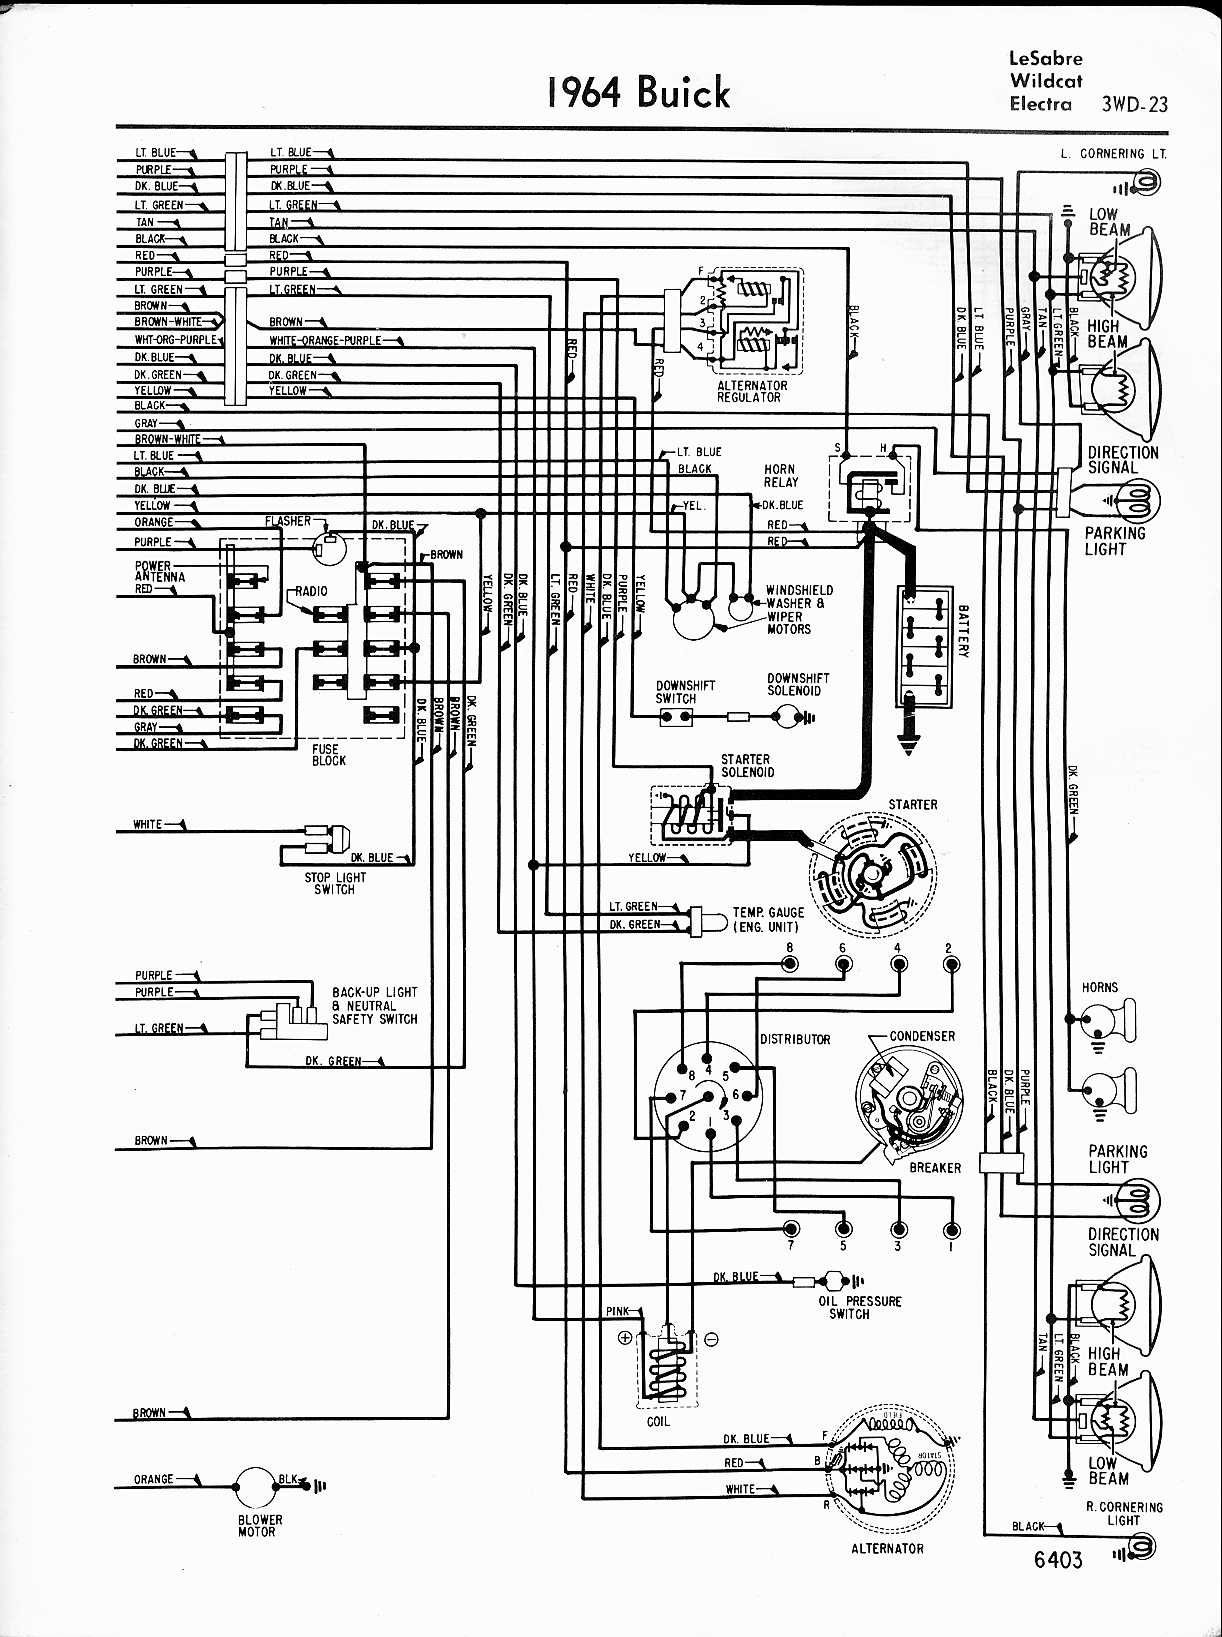 tail light wiring diagram for 2001 lesabre seol music city uk 2004 Dodge Ram 1500 Tail Light Wiring Diagram 2001 lesabre wiring diagram designmethodsandprocesses co uk u2022 rh designmethodsandprocesses co uk led tail light wiring diagram chevy tail light wiring